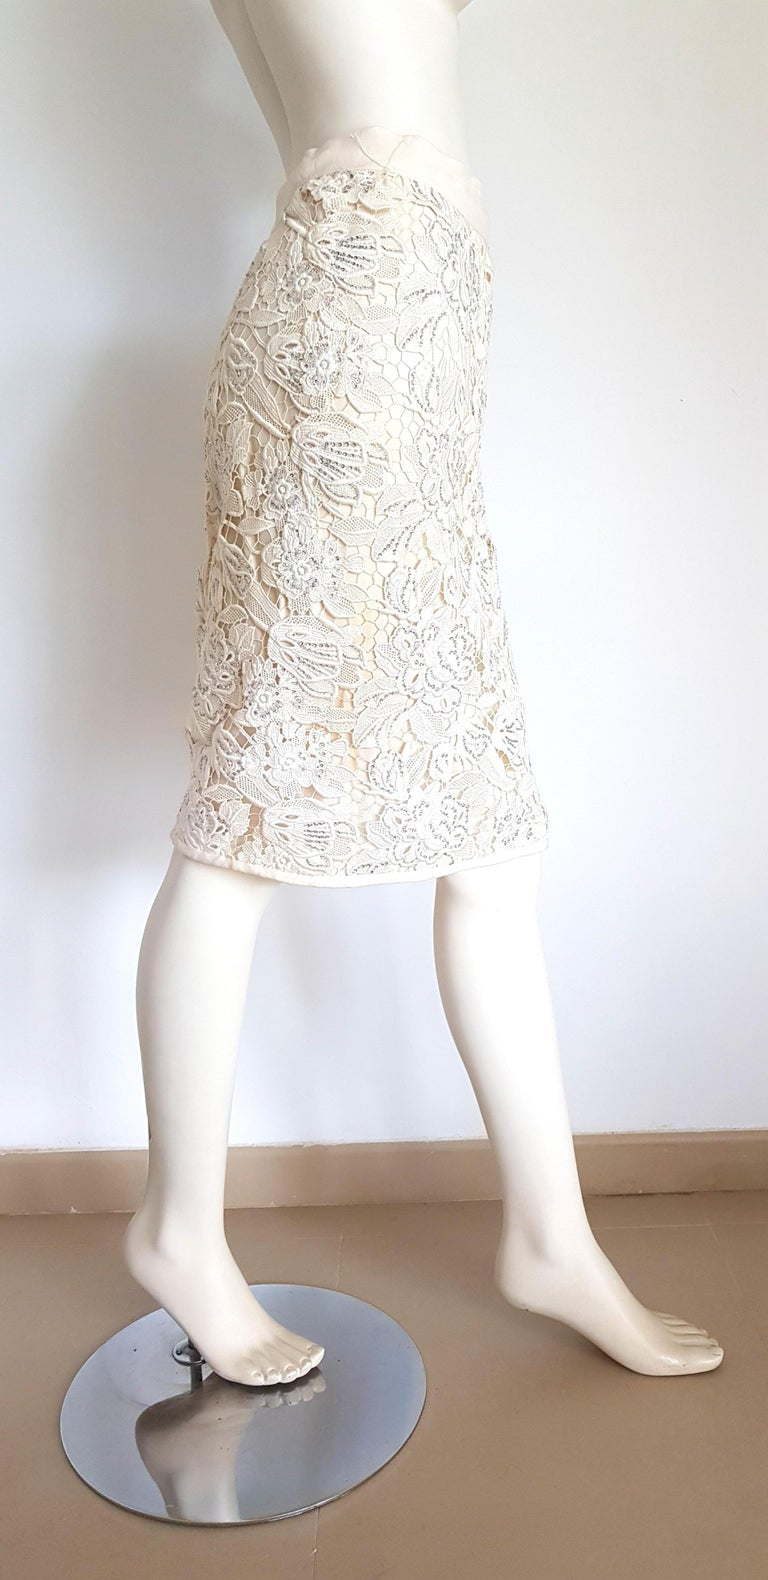 VALENTINO Haute Couture Swarovski Diamonds Embroidered Lace Beige Suit - Unworn For Sale 4